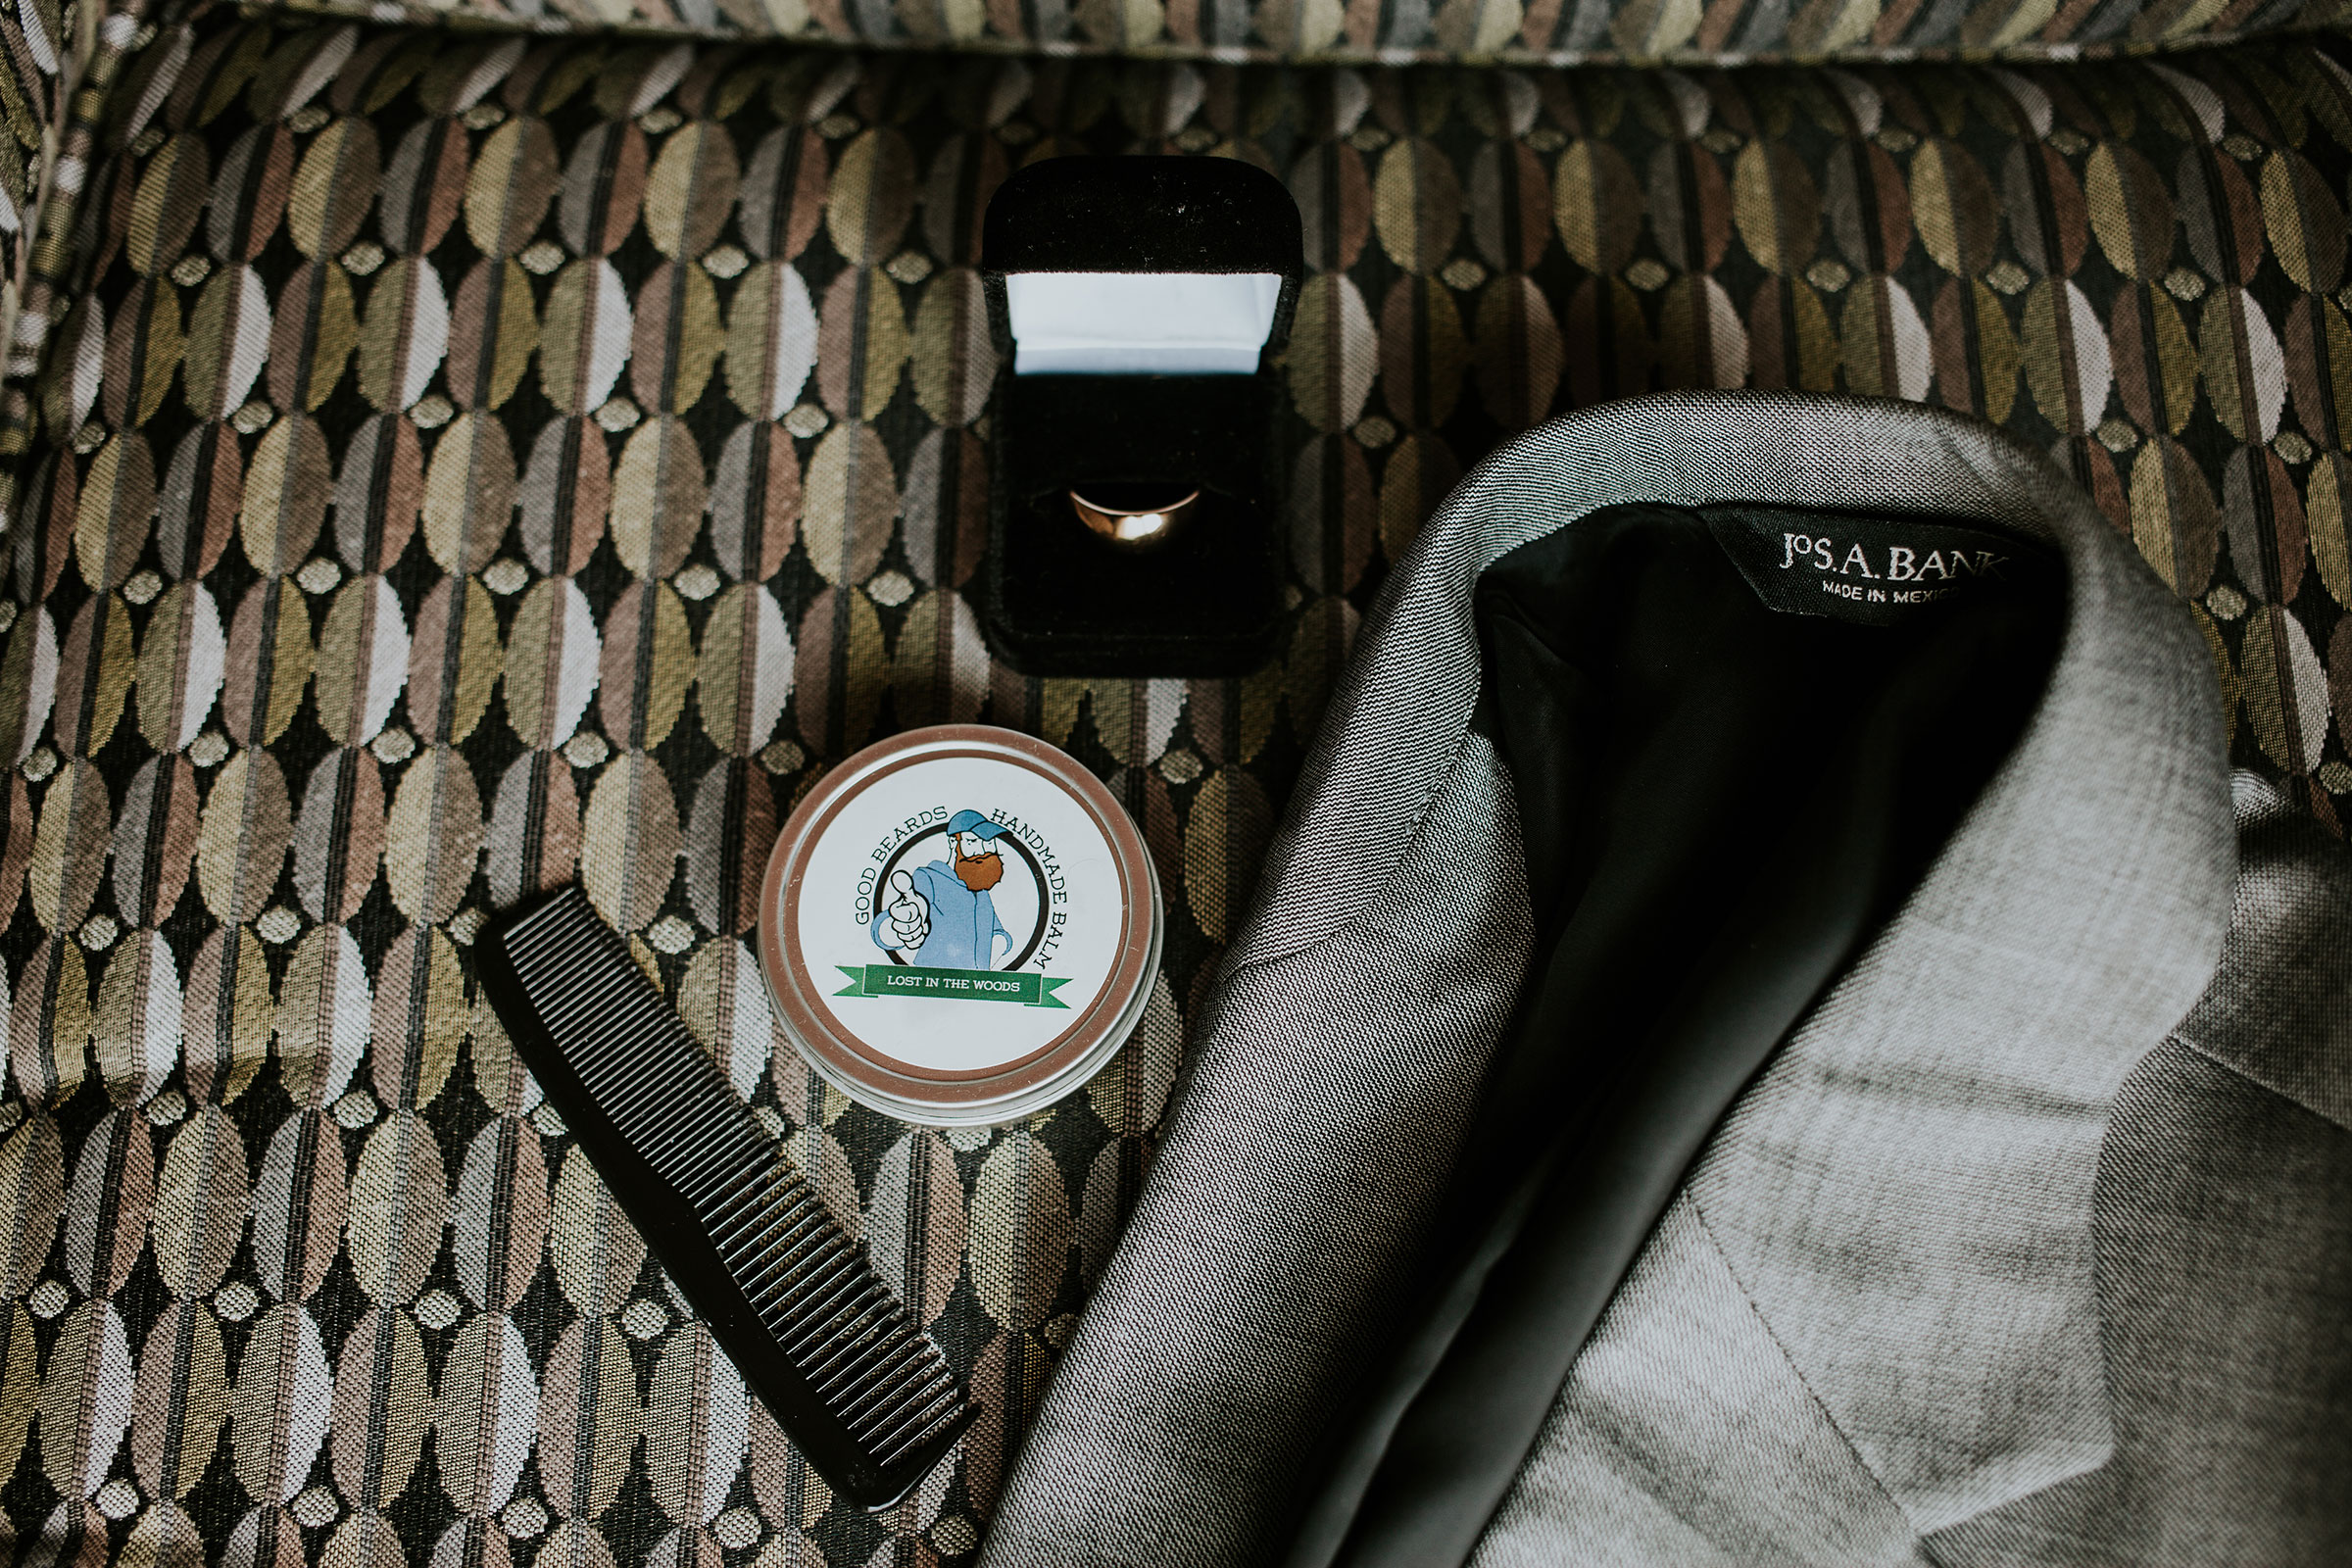 grooms-details-jacket-hair-product-and-ring-prairie-meadows-desmoines-iowa-raelyn-ramey-photography.jpg